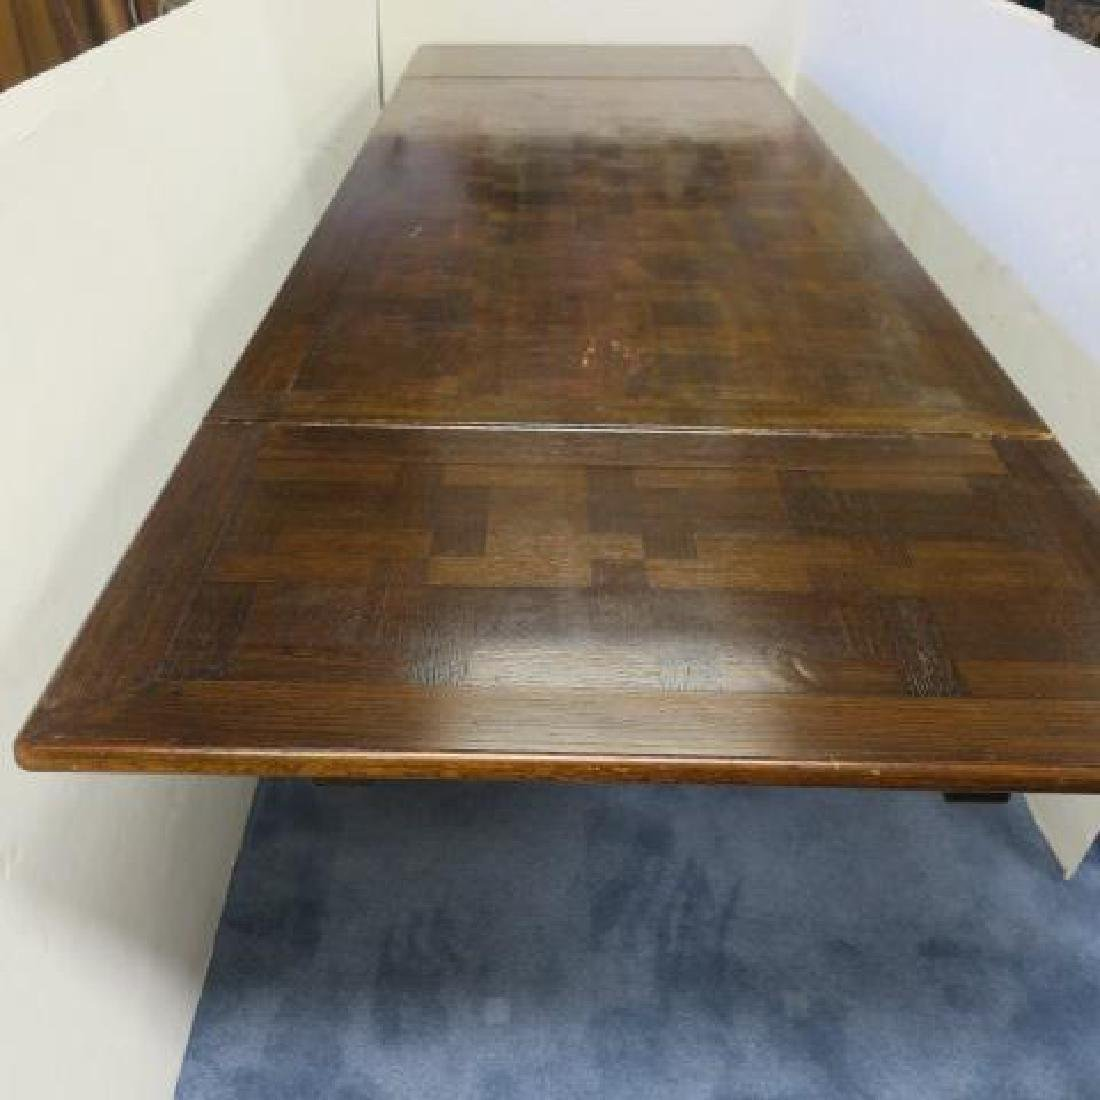 Impressive Dark Oak Trestle Table with Extensions: - 2